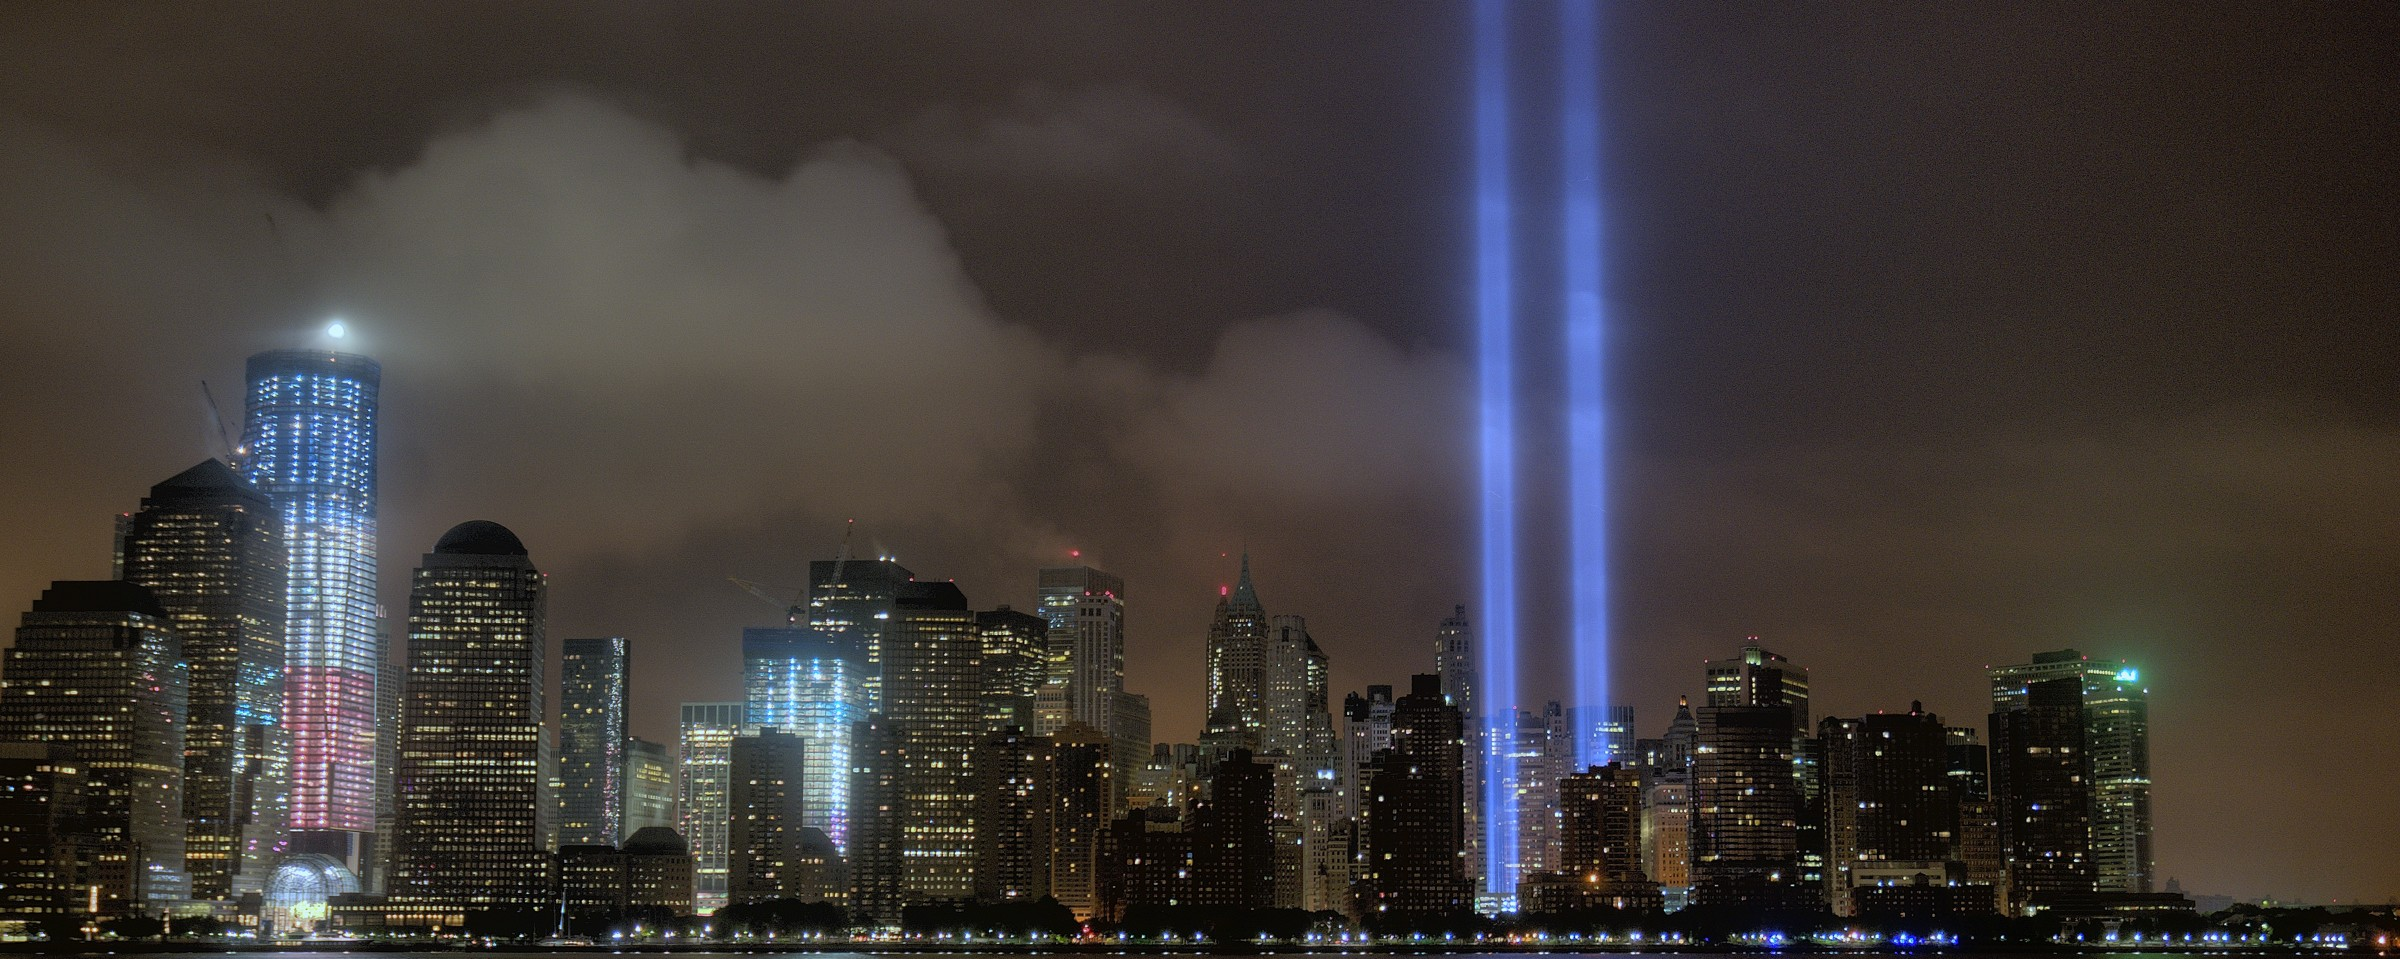 911 victims suing saudi arabia Iran ordered to pay billions to relatives of 9/11 victims  legal experts say law  allowing 9/11 families to sue saudi arabia has consequences.